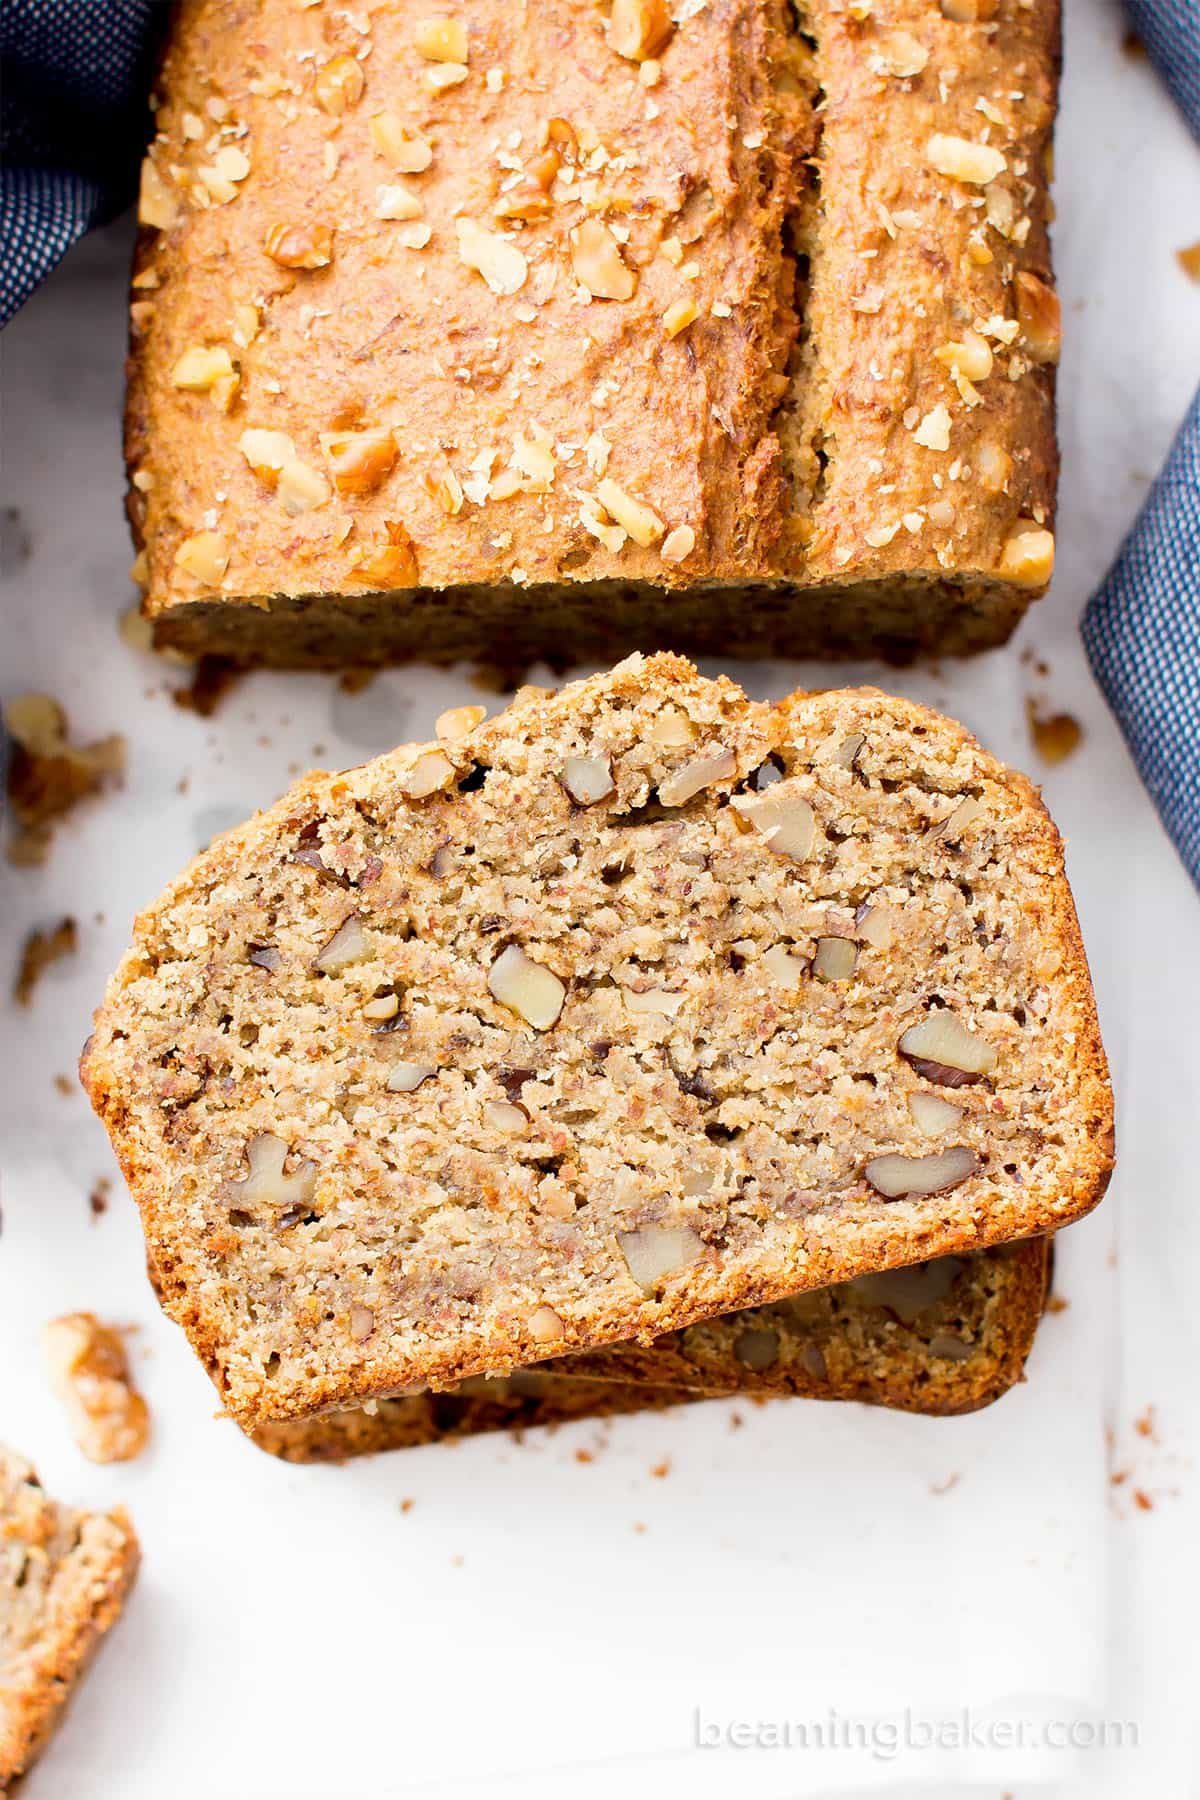 One Bowl Vegan Gluten Free Banana Nut Bread (V, GF, DF): an easy recipe for perfectly moist banana bread packed with walnuts and bursting with banana flavor! #Vegan #GlutenFree #OatFlour #DairyFree | BeamingBaker.com